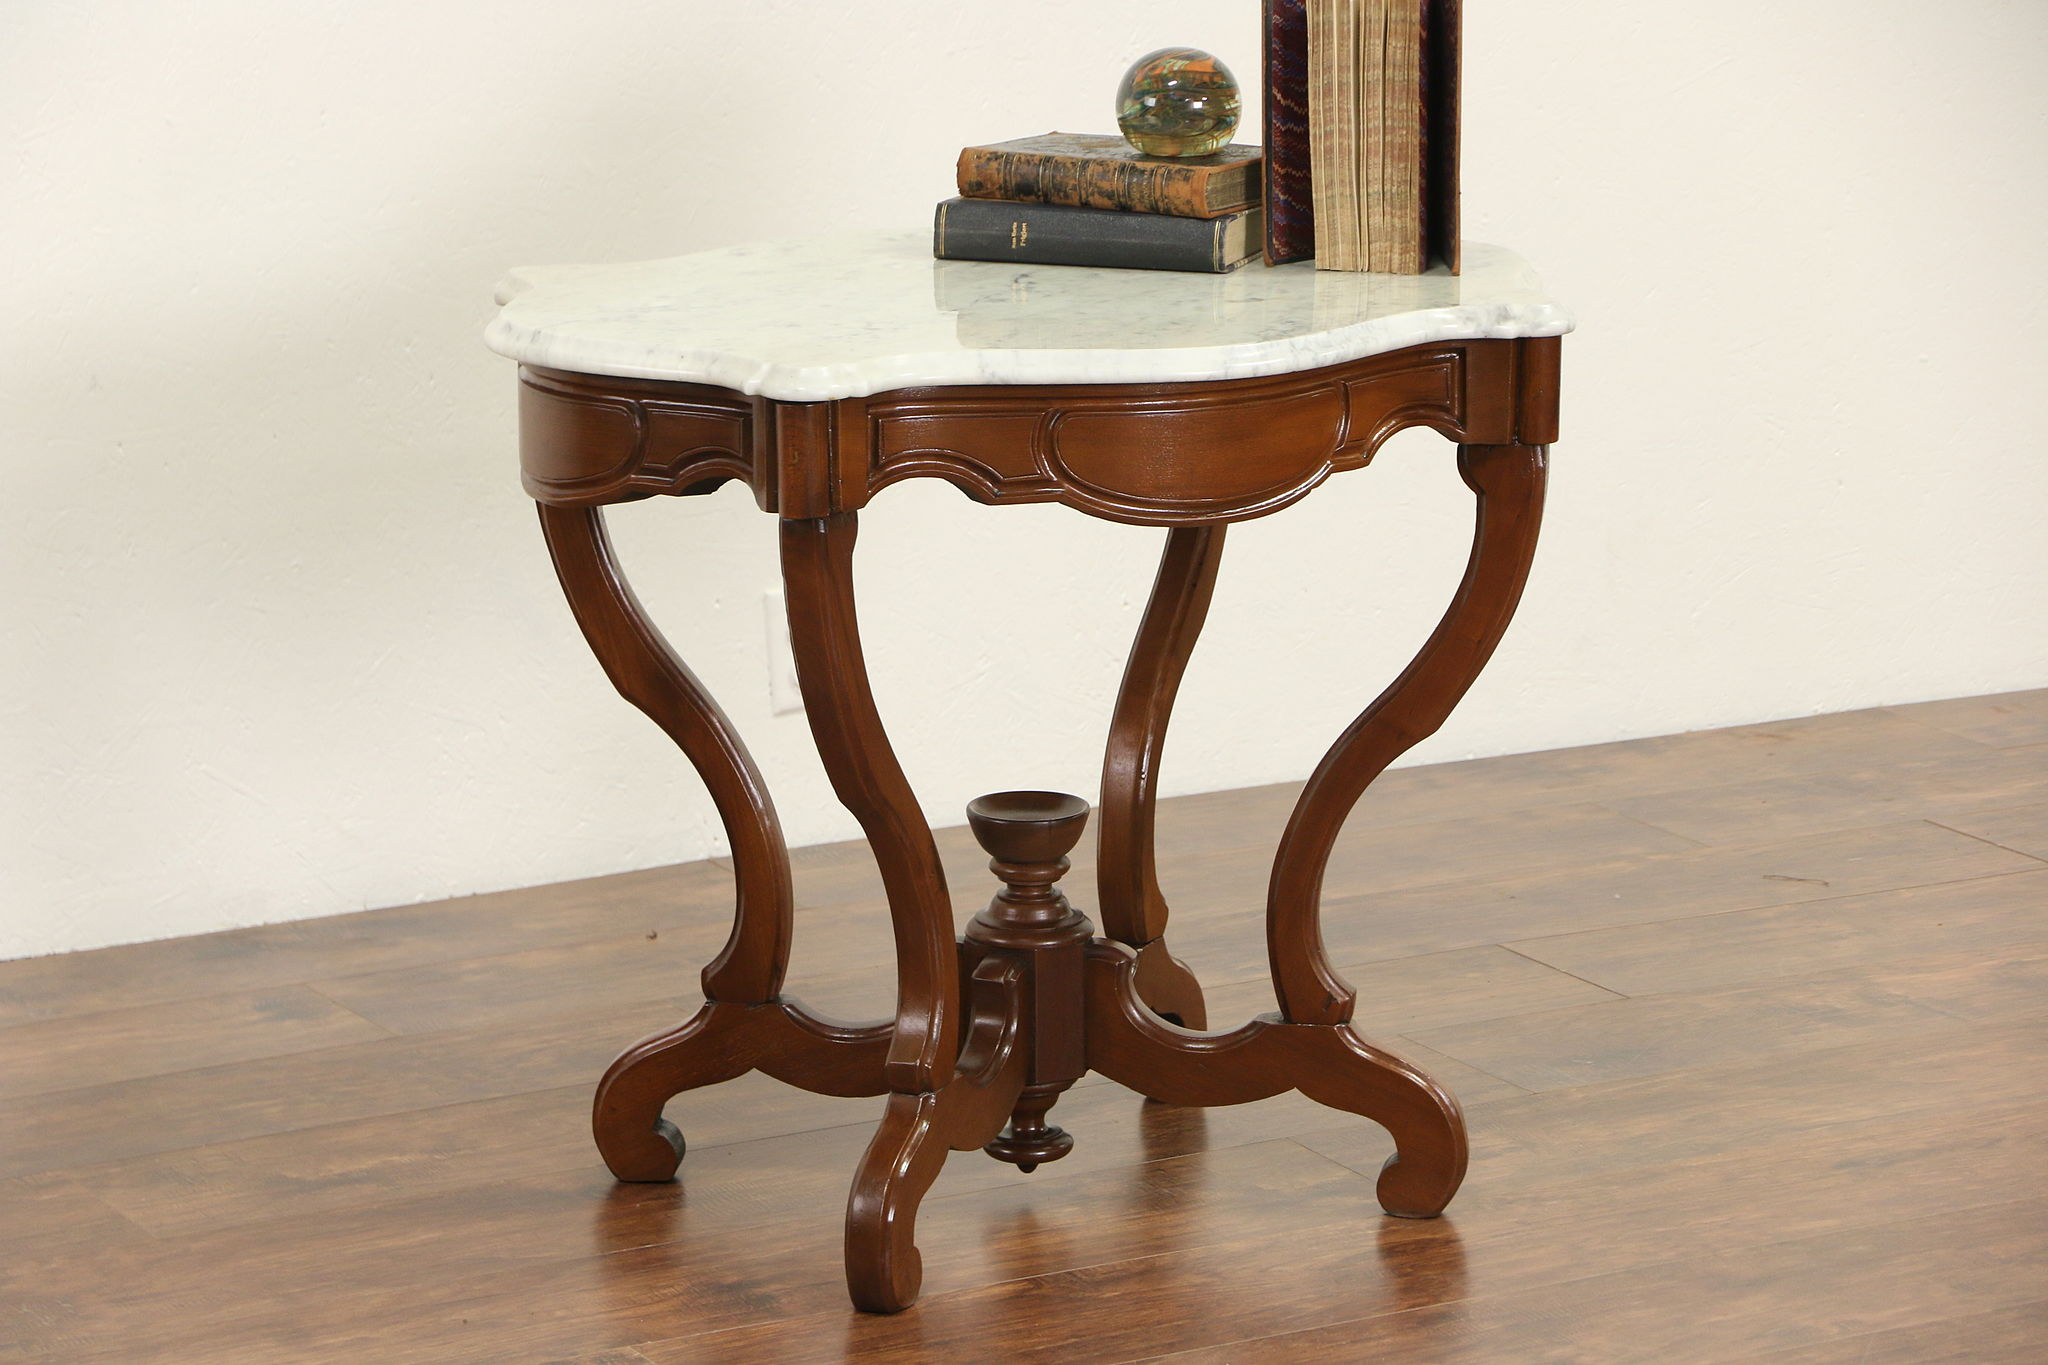 Sold victorian 1860s antique marble top walnut parlor or lamp victorian 1860s antique marble top walnut parlor or lamp table geotapseo Image collections